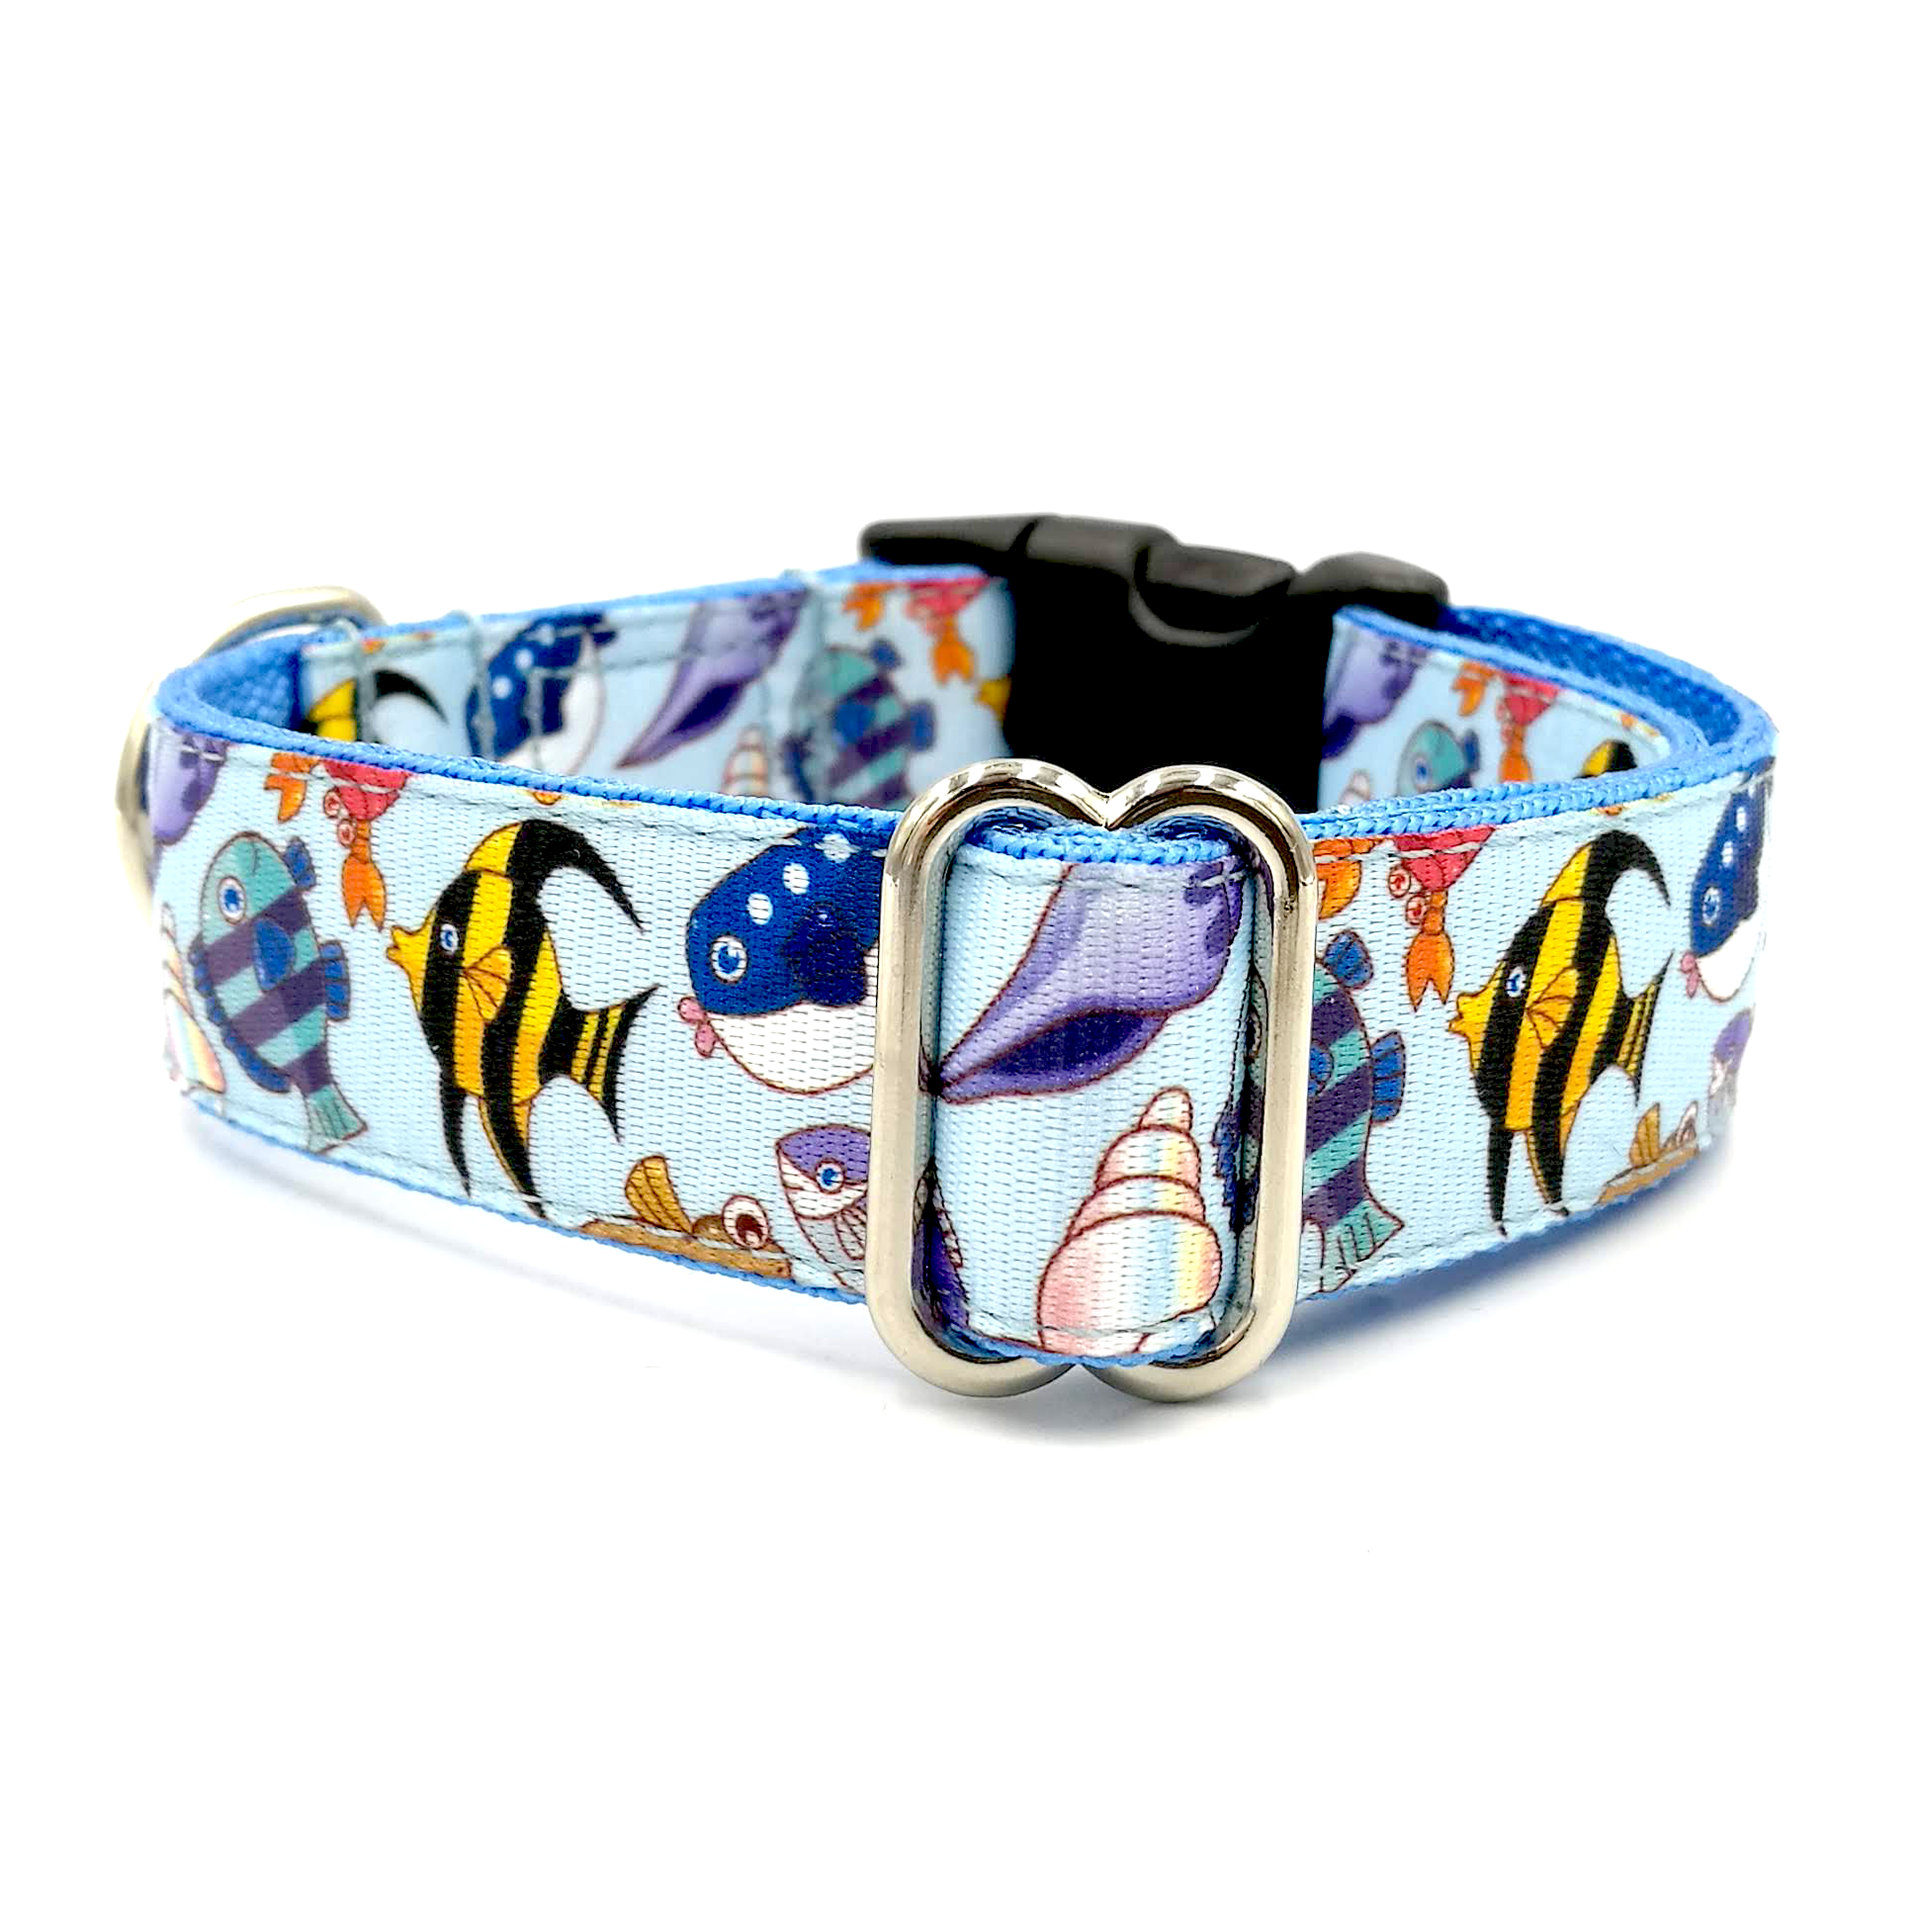 BlueBay dog collar